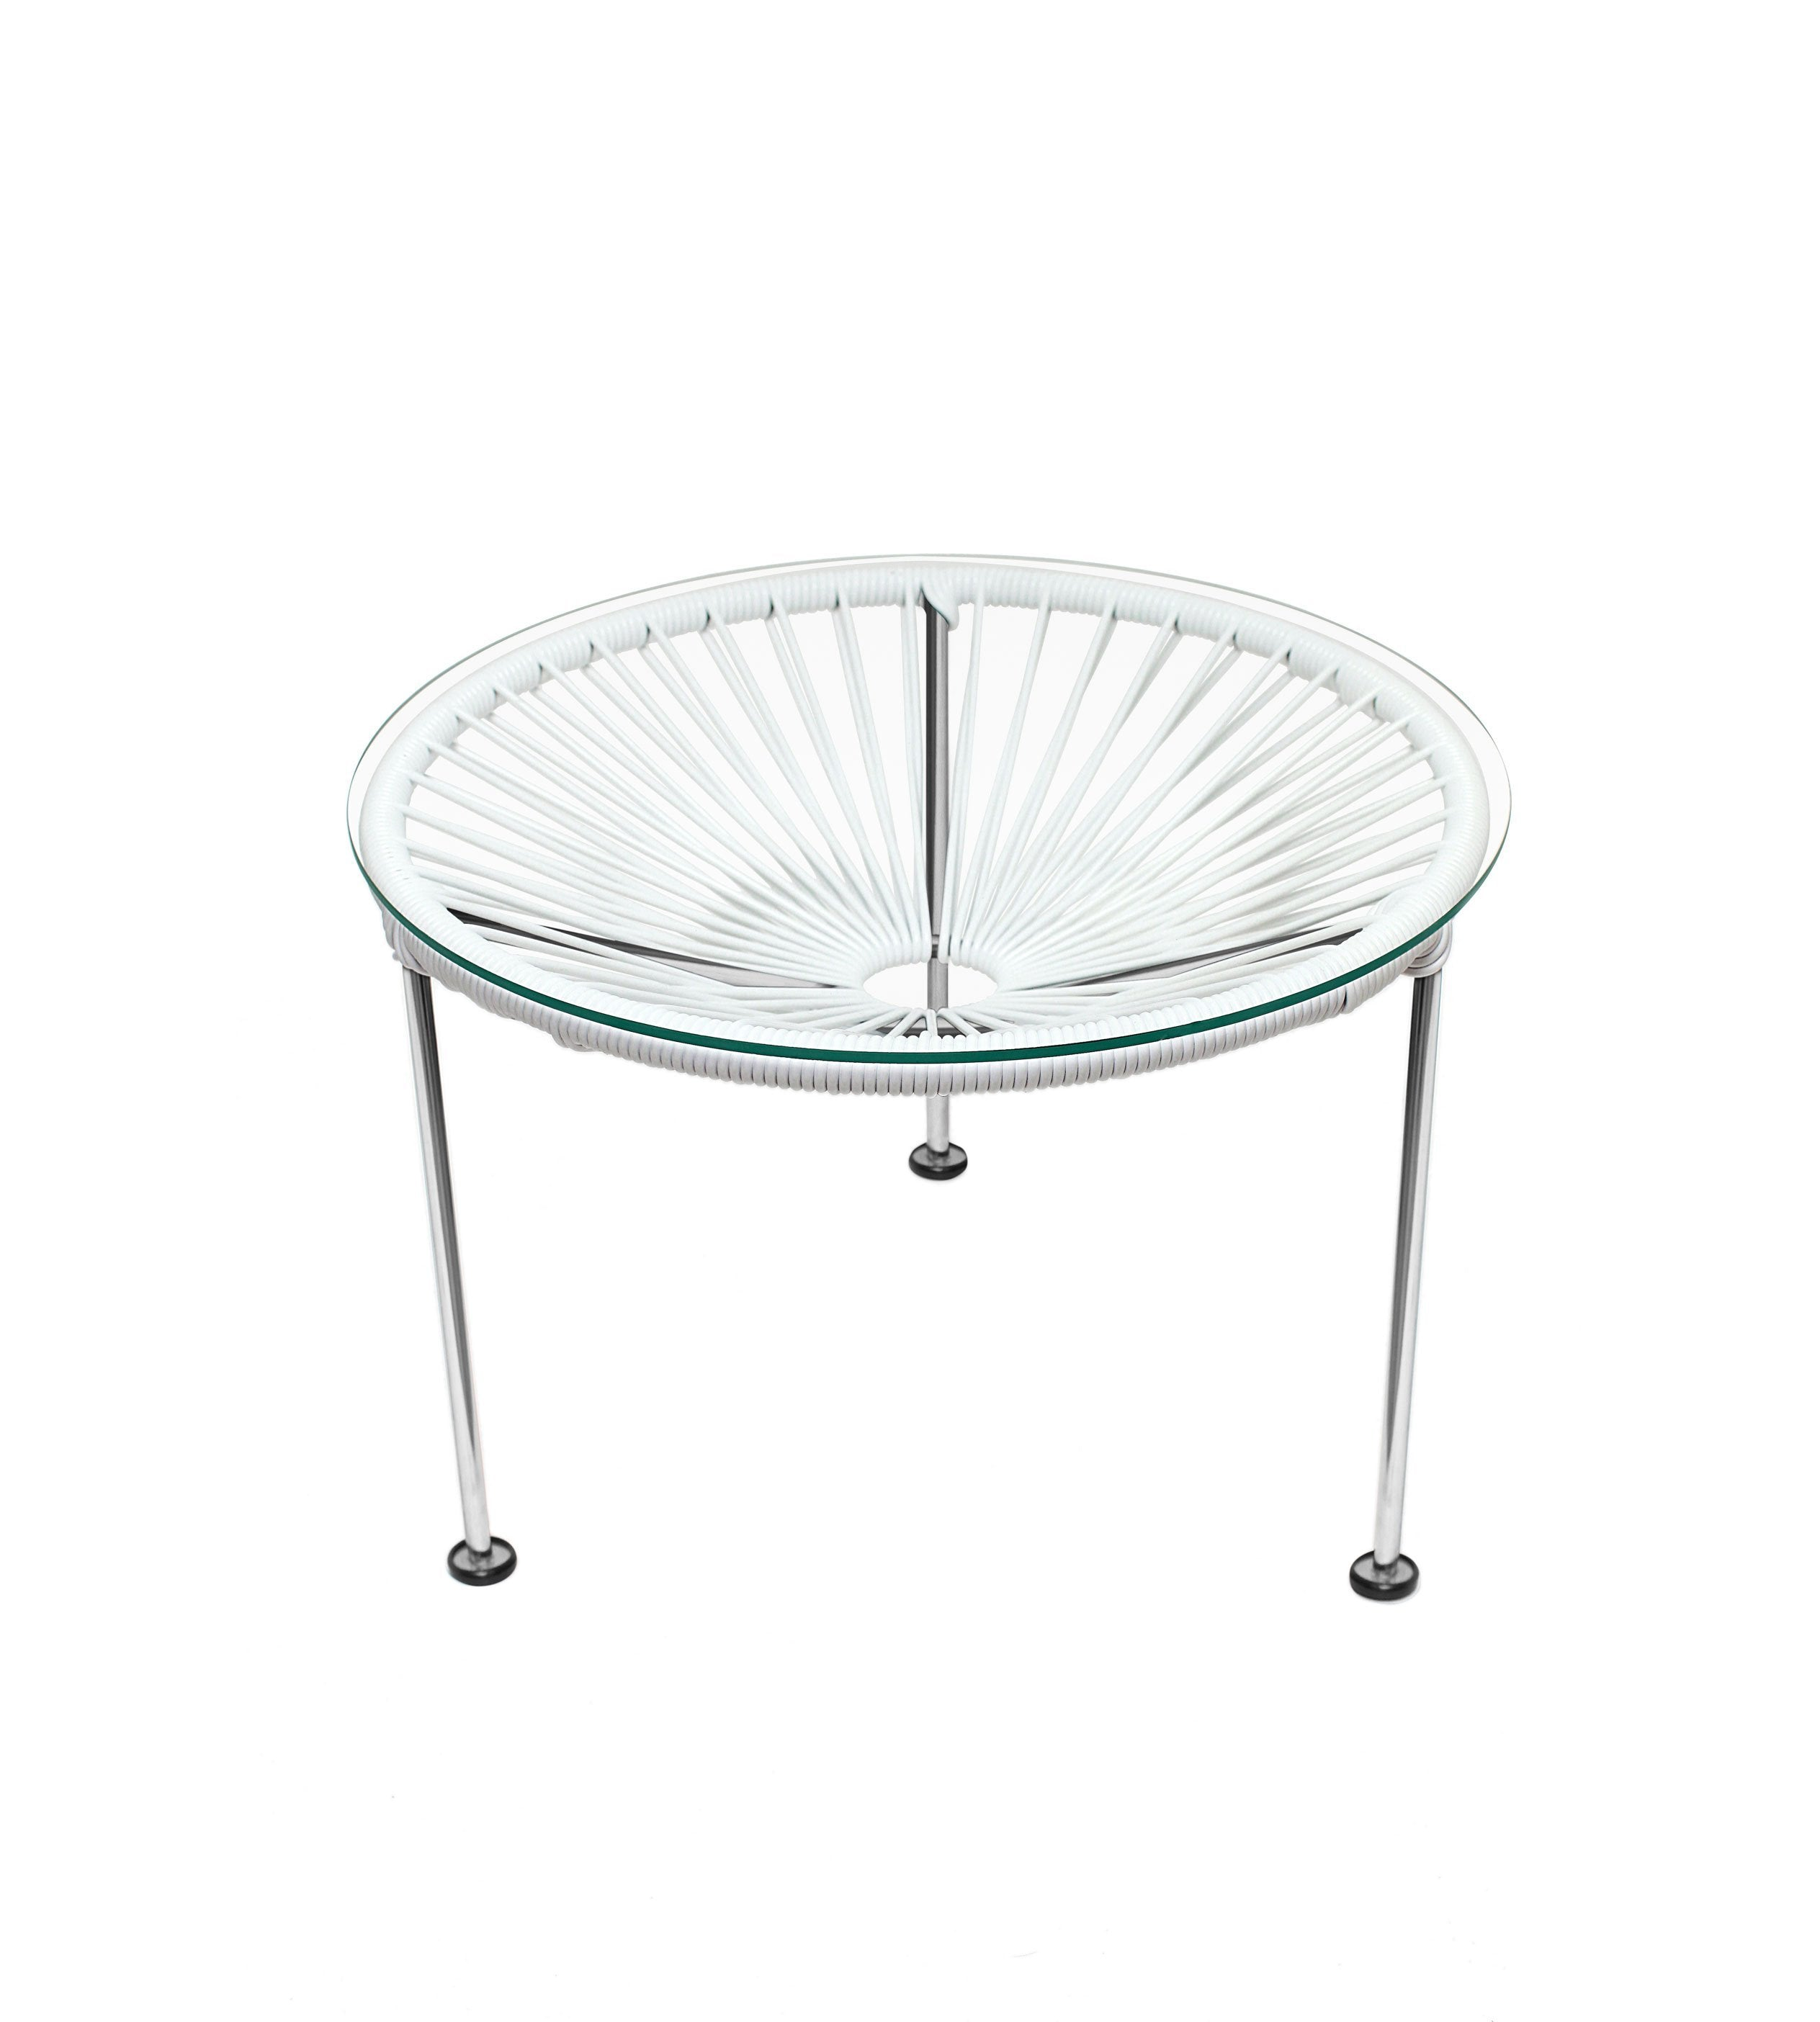 Buy Zica Table on Chrome Frame at Lifeix Design for only